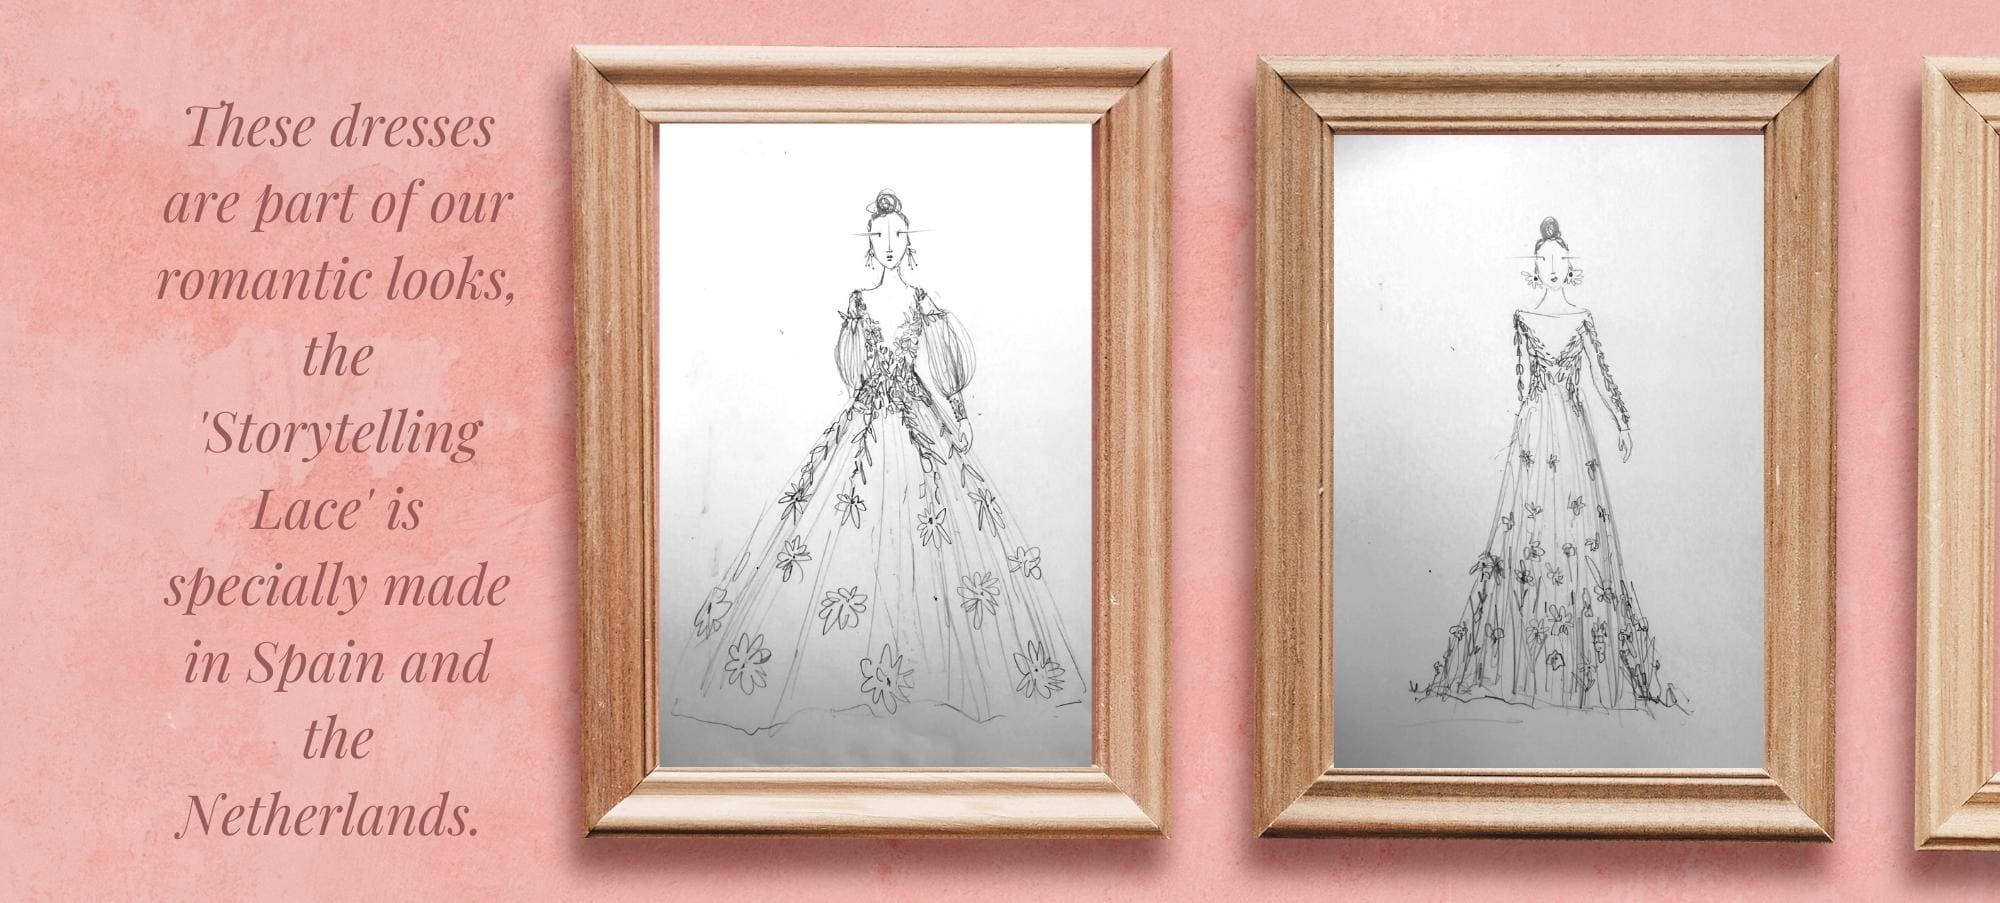 Drawings of two dresses with story telling lace.